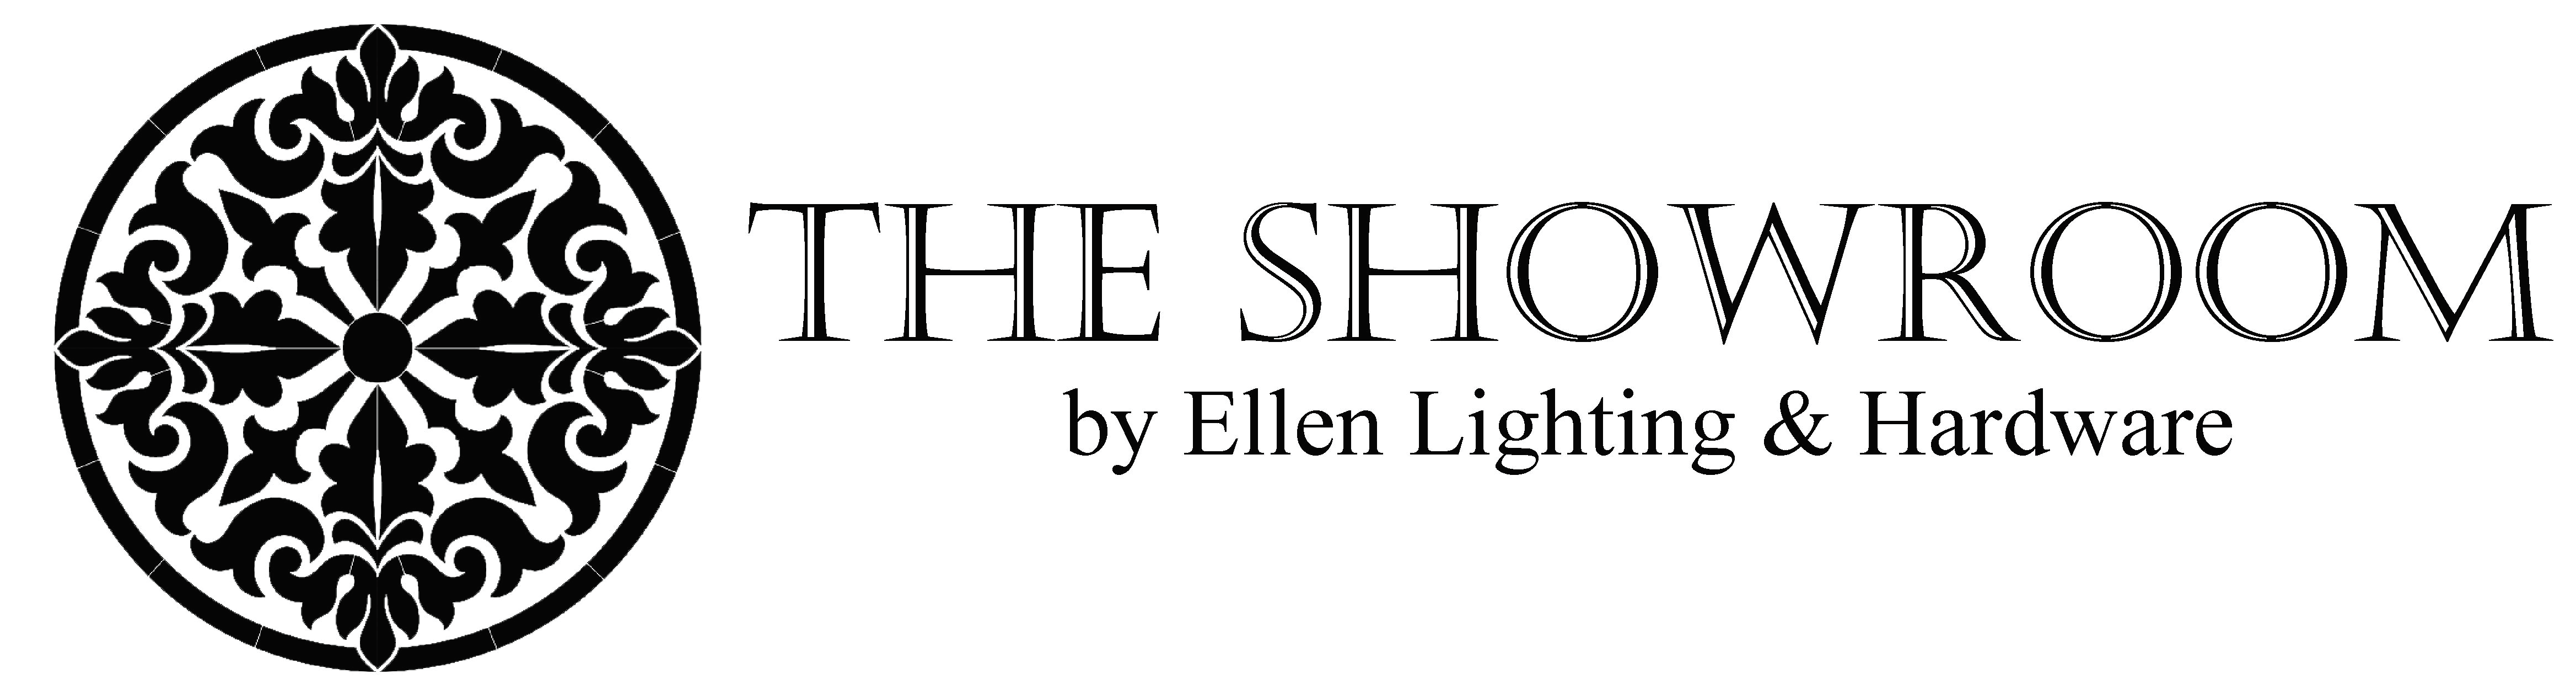 The Showroom by Ellen Lighting & Hardware